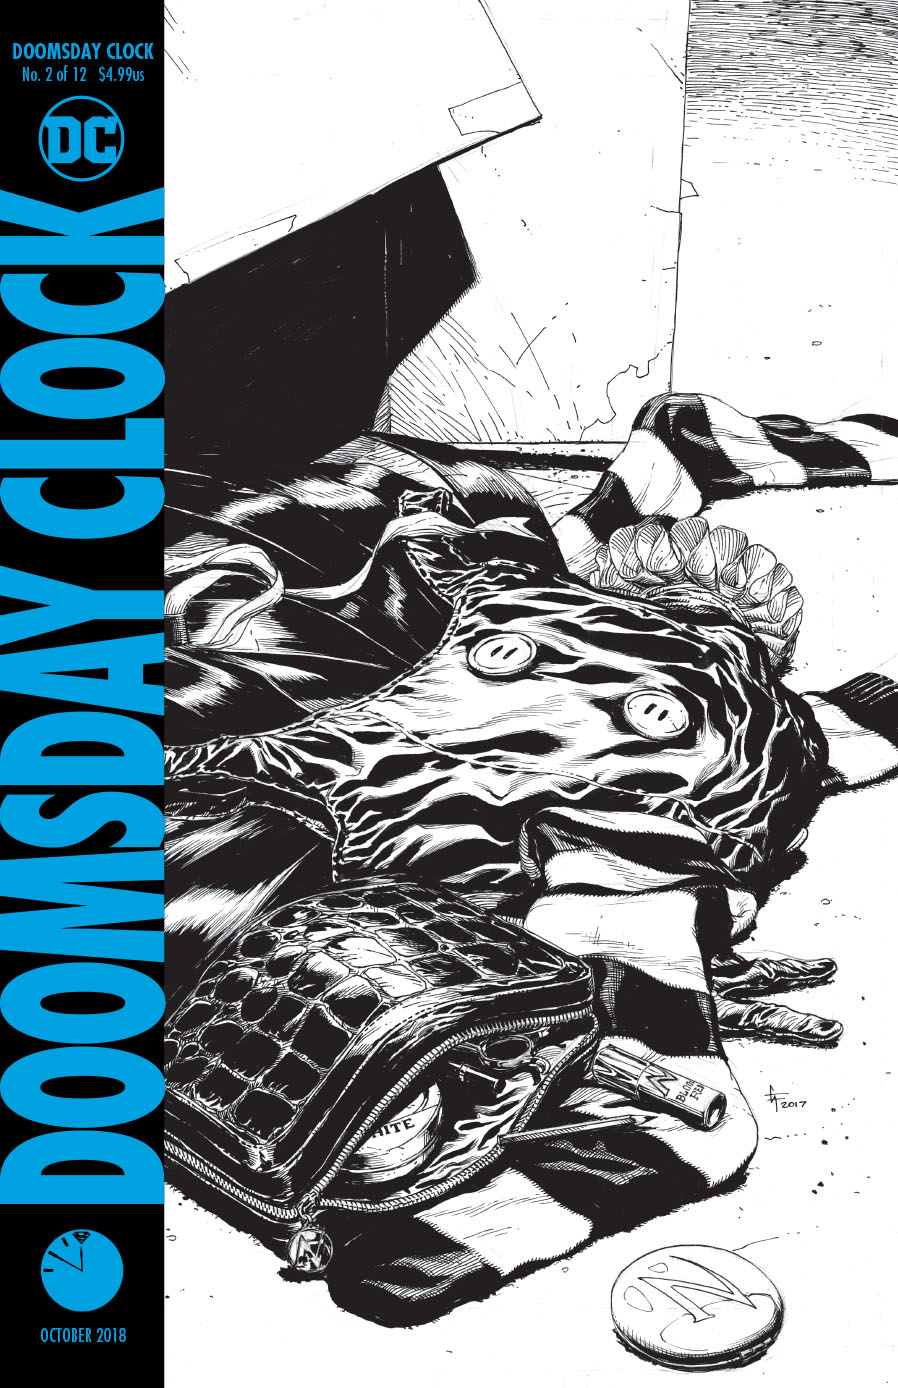 DOOMSDAY CLOCK #2 (OF 12) 3RD PTG